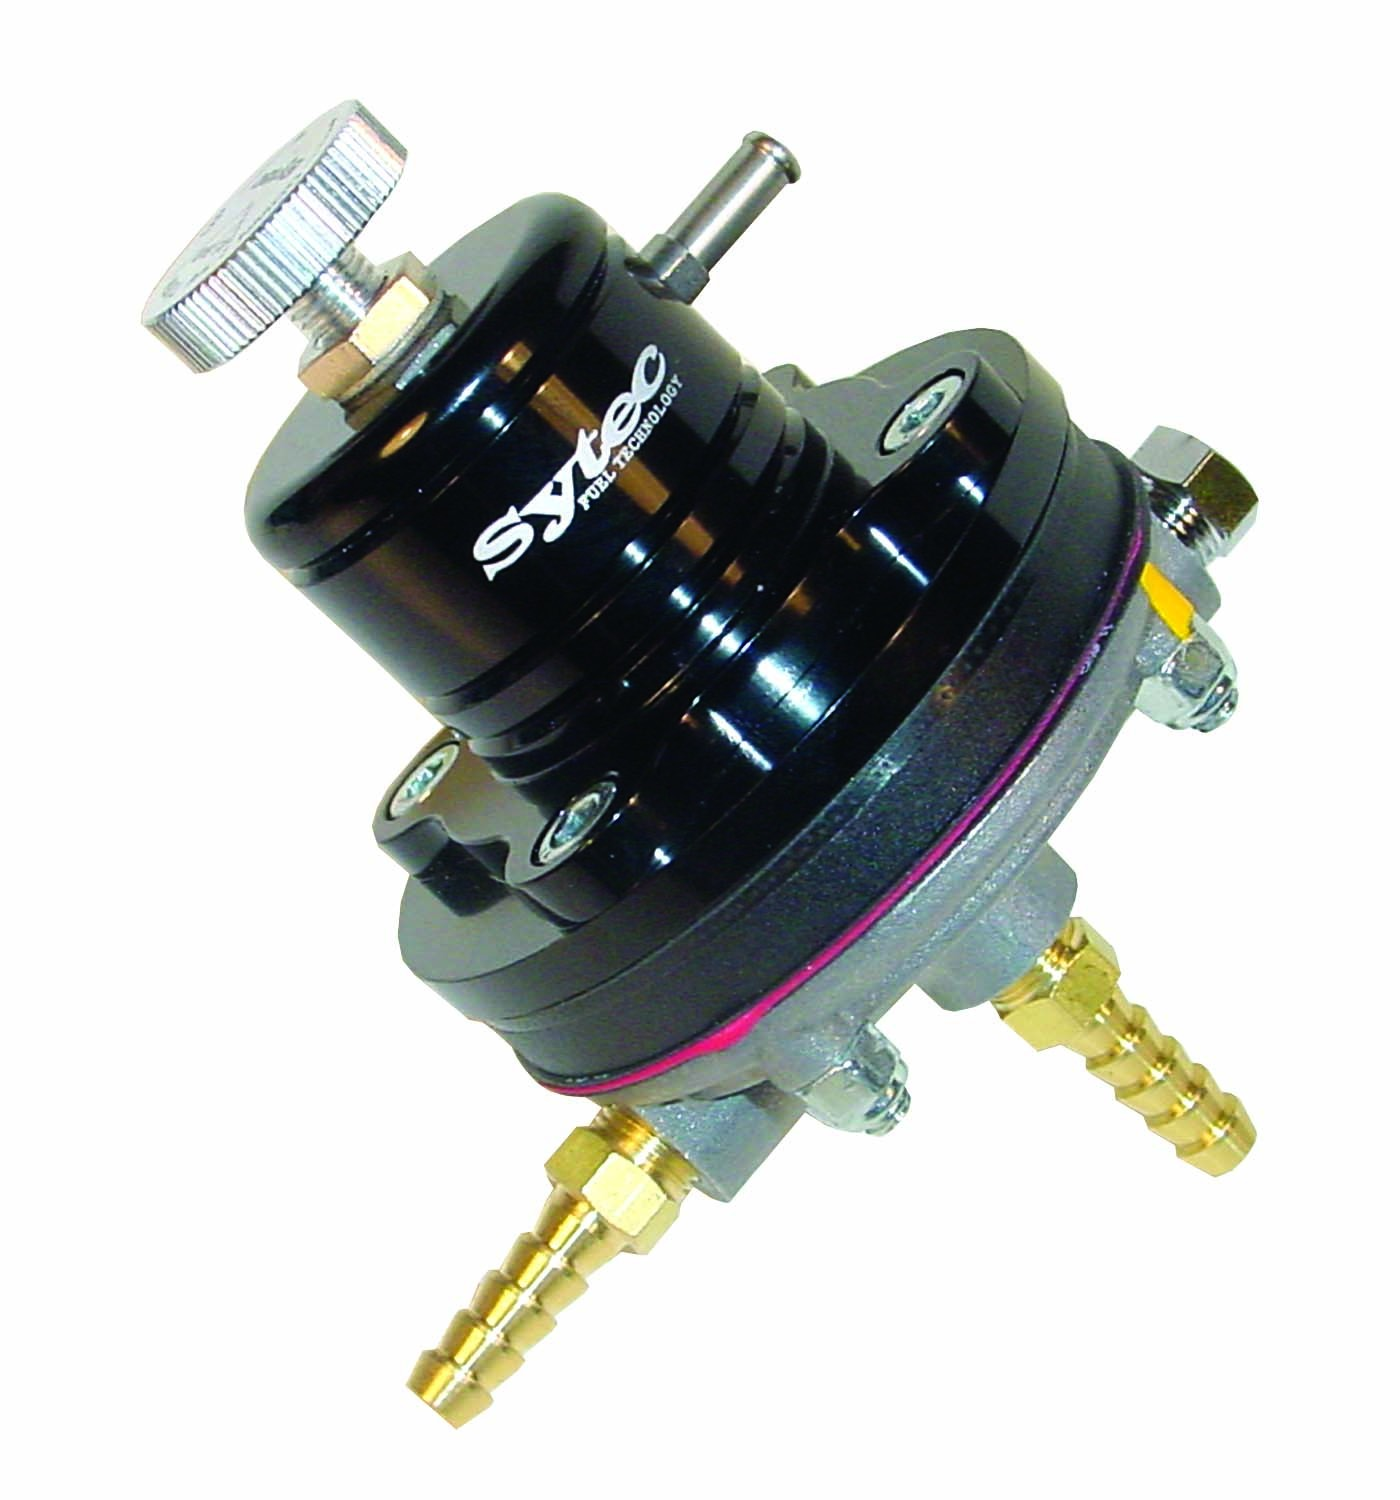 Sytec MSV 1:1 Motorsport Fuel Pressure Regulators